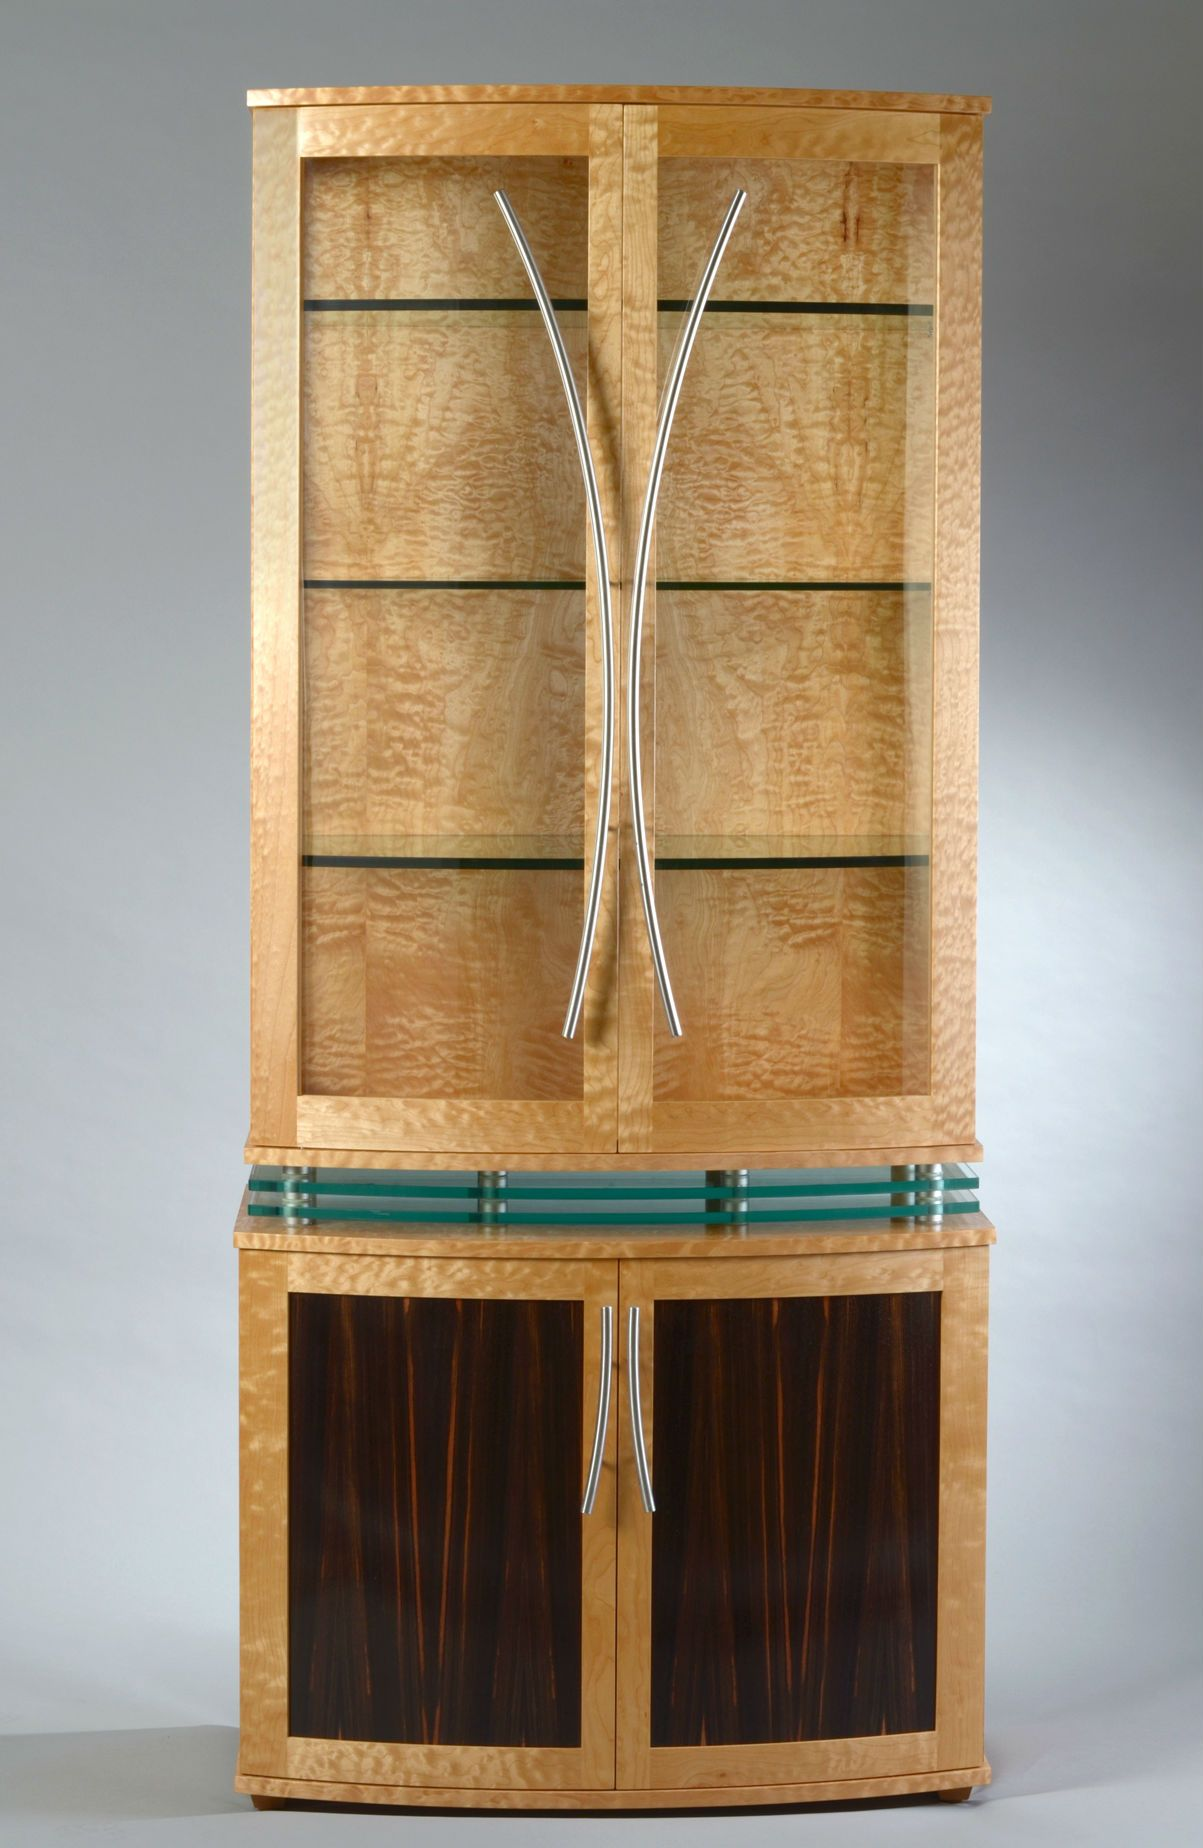 Custom Made China Cabinet Art Deco Style Modern Display Quilted Maple Curved Front By Nathan Hunter Design Custommade